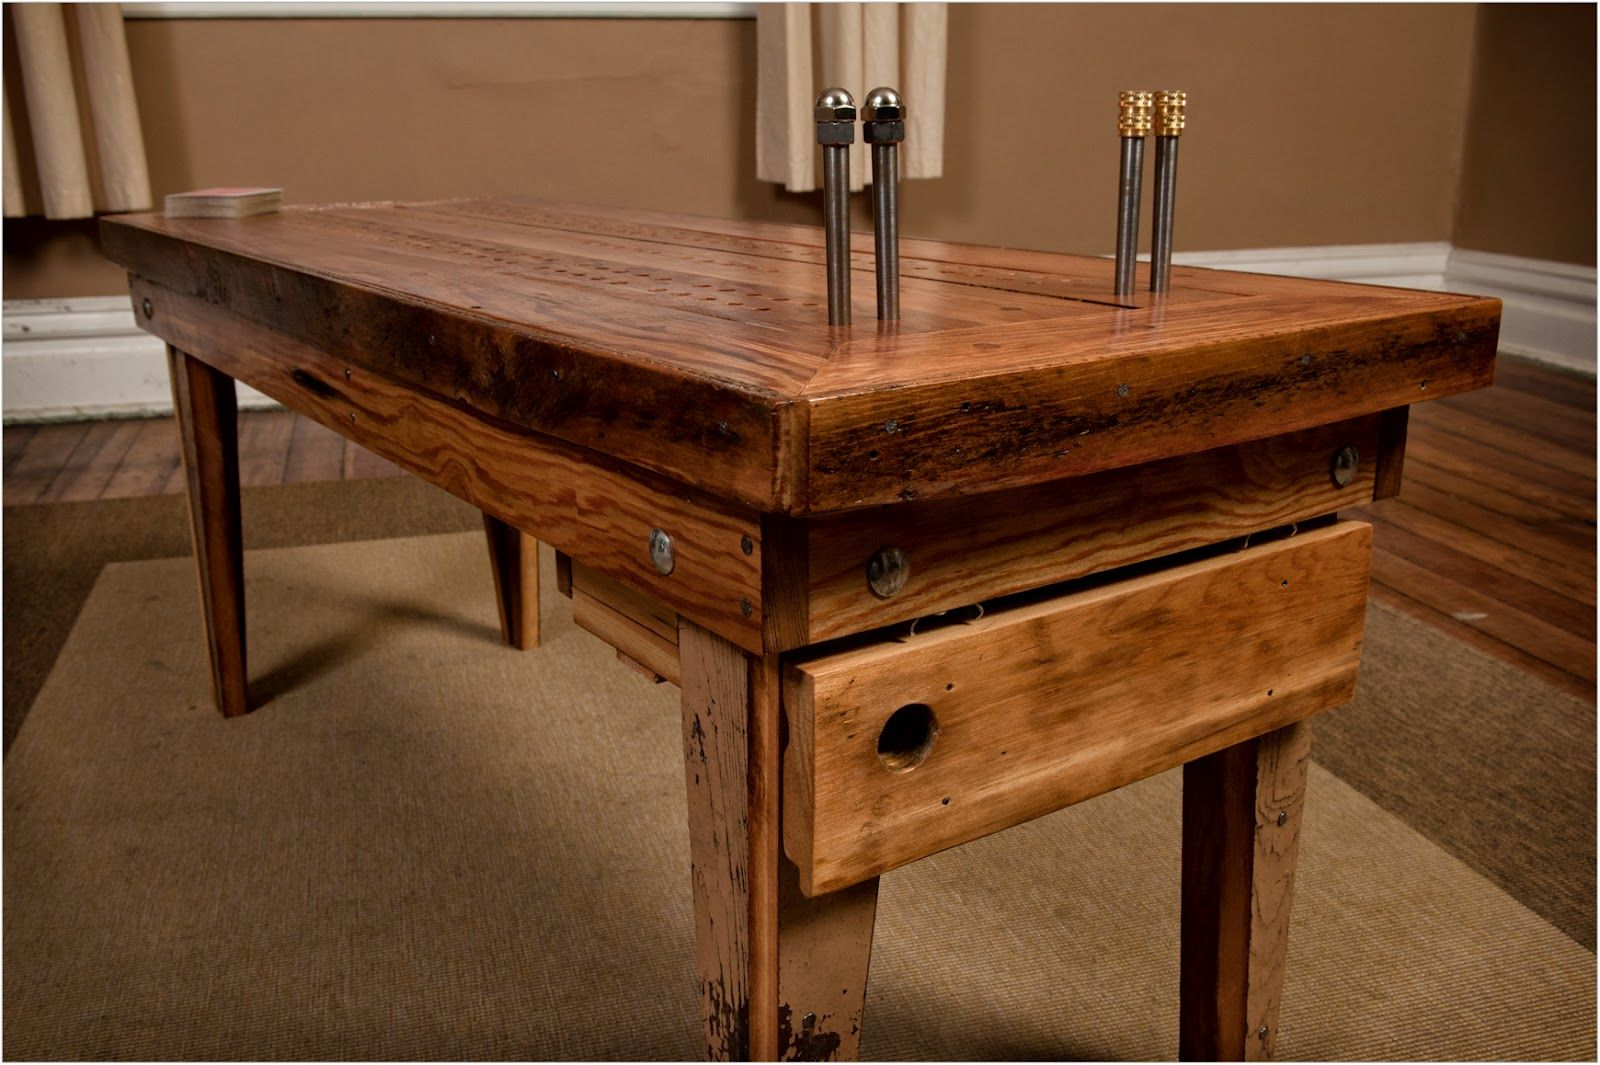 table templet of cards the cribbage board coffee table from rh pinterest com cribbage board coffee table template